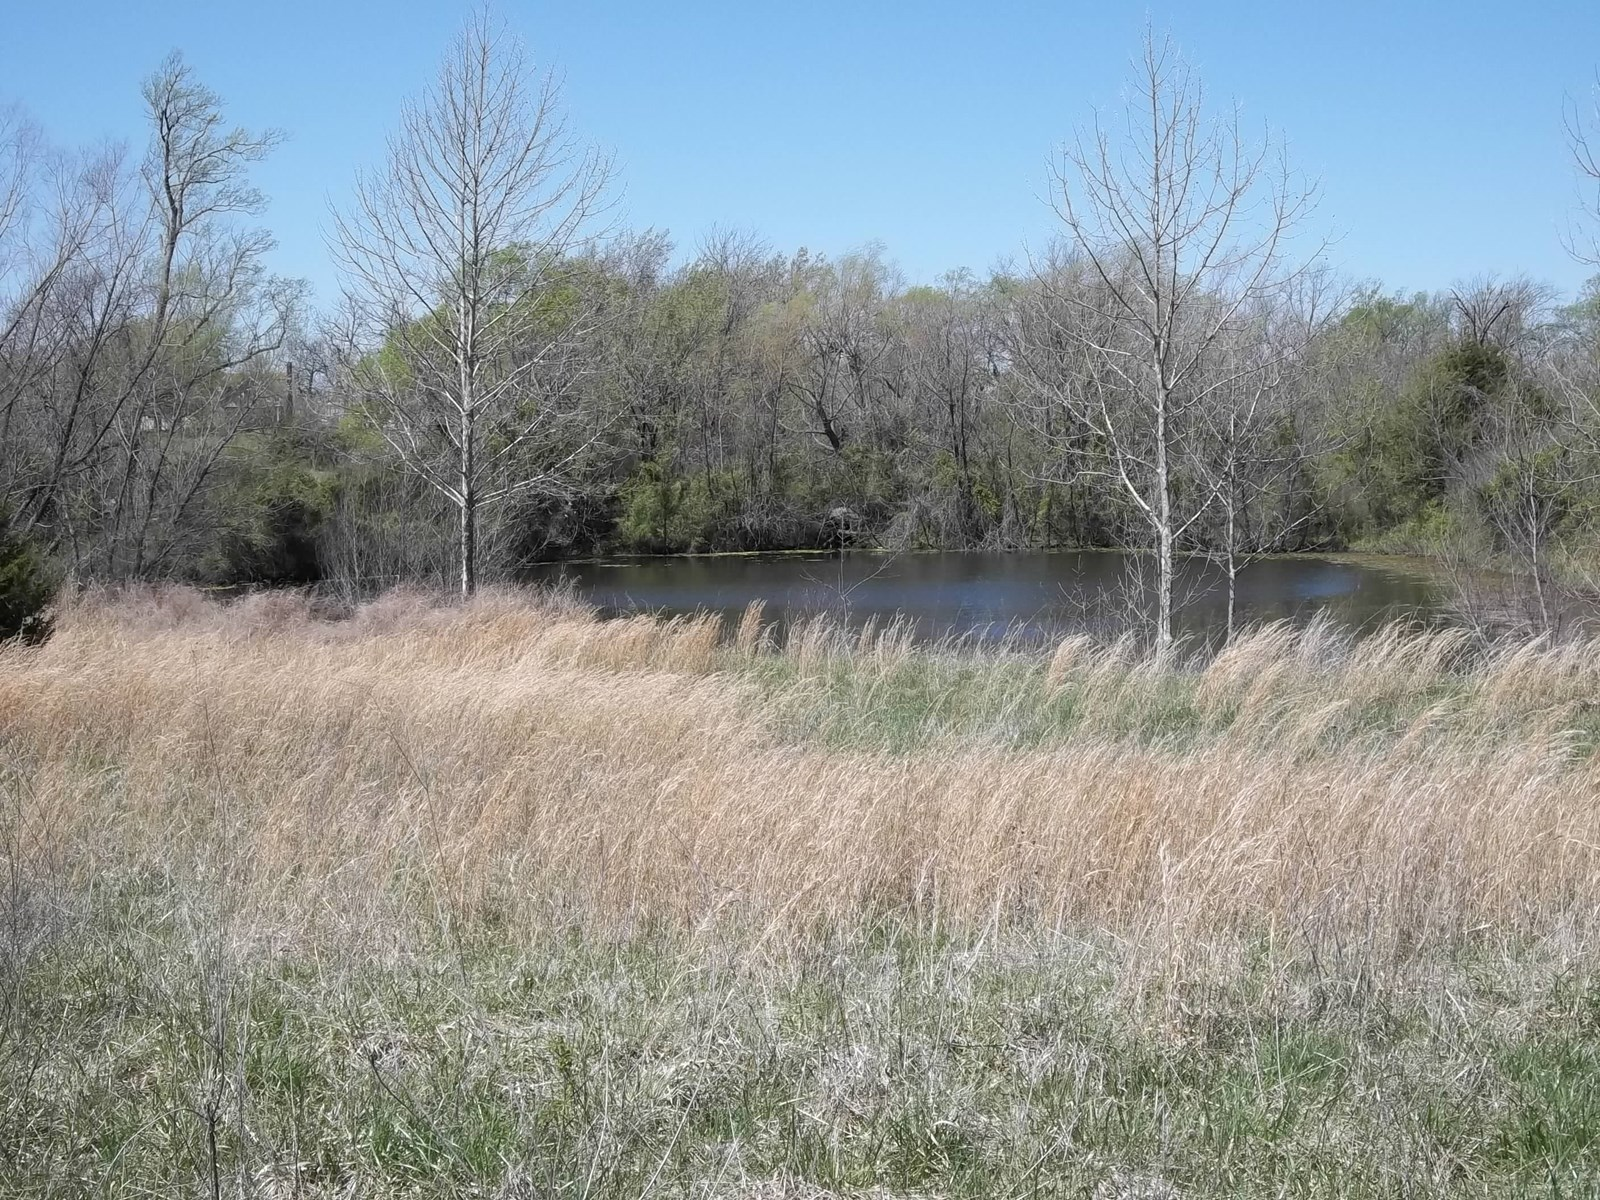 Land for Sale in Neosho County Kansas